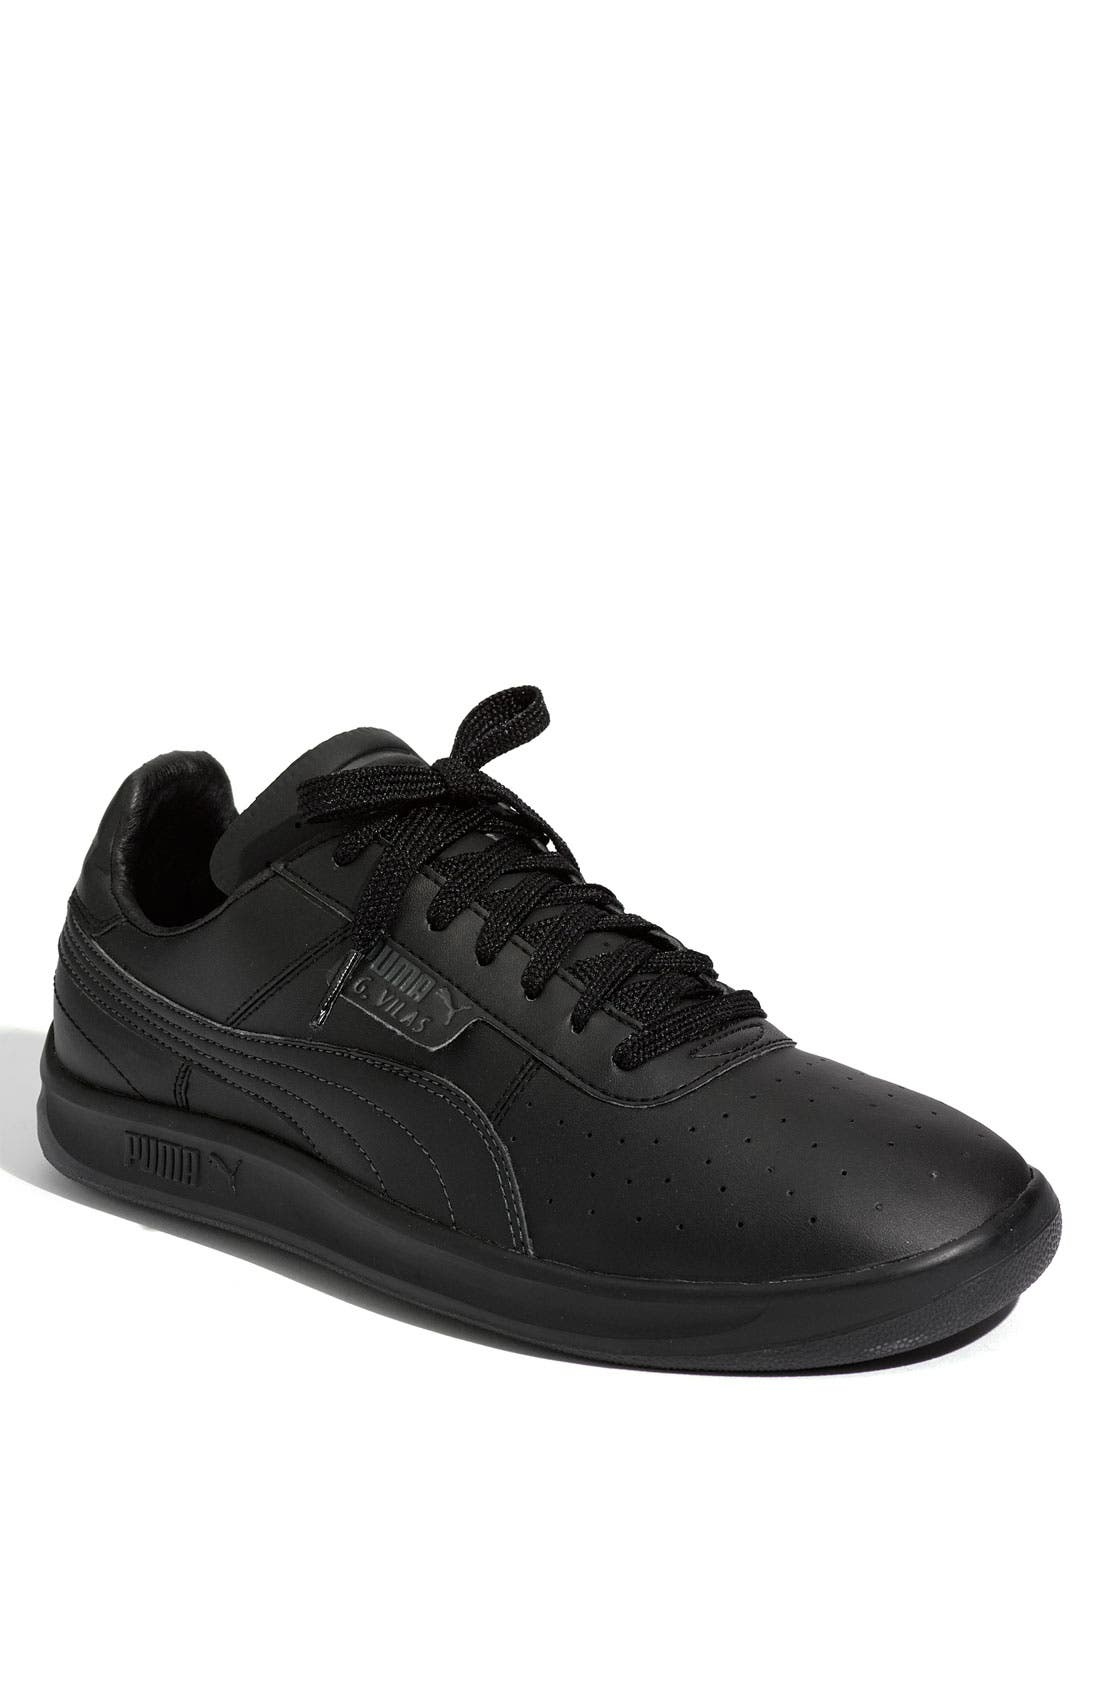 Alternate Image 1 Selected - Puma 'G. Vilas L2' Sneaker